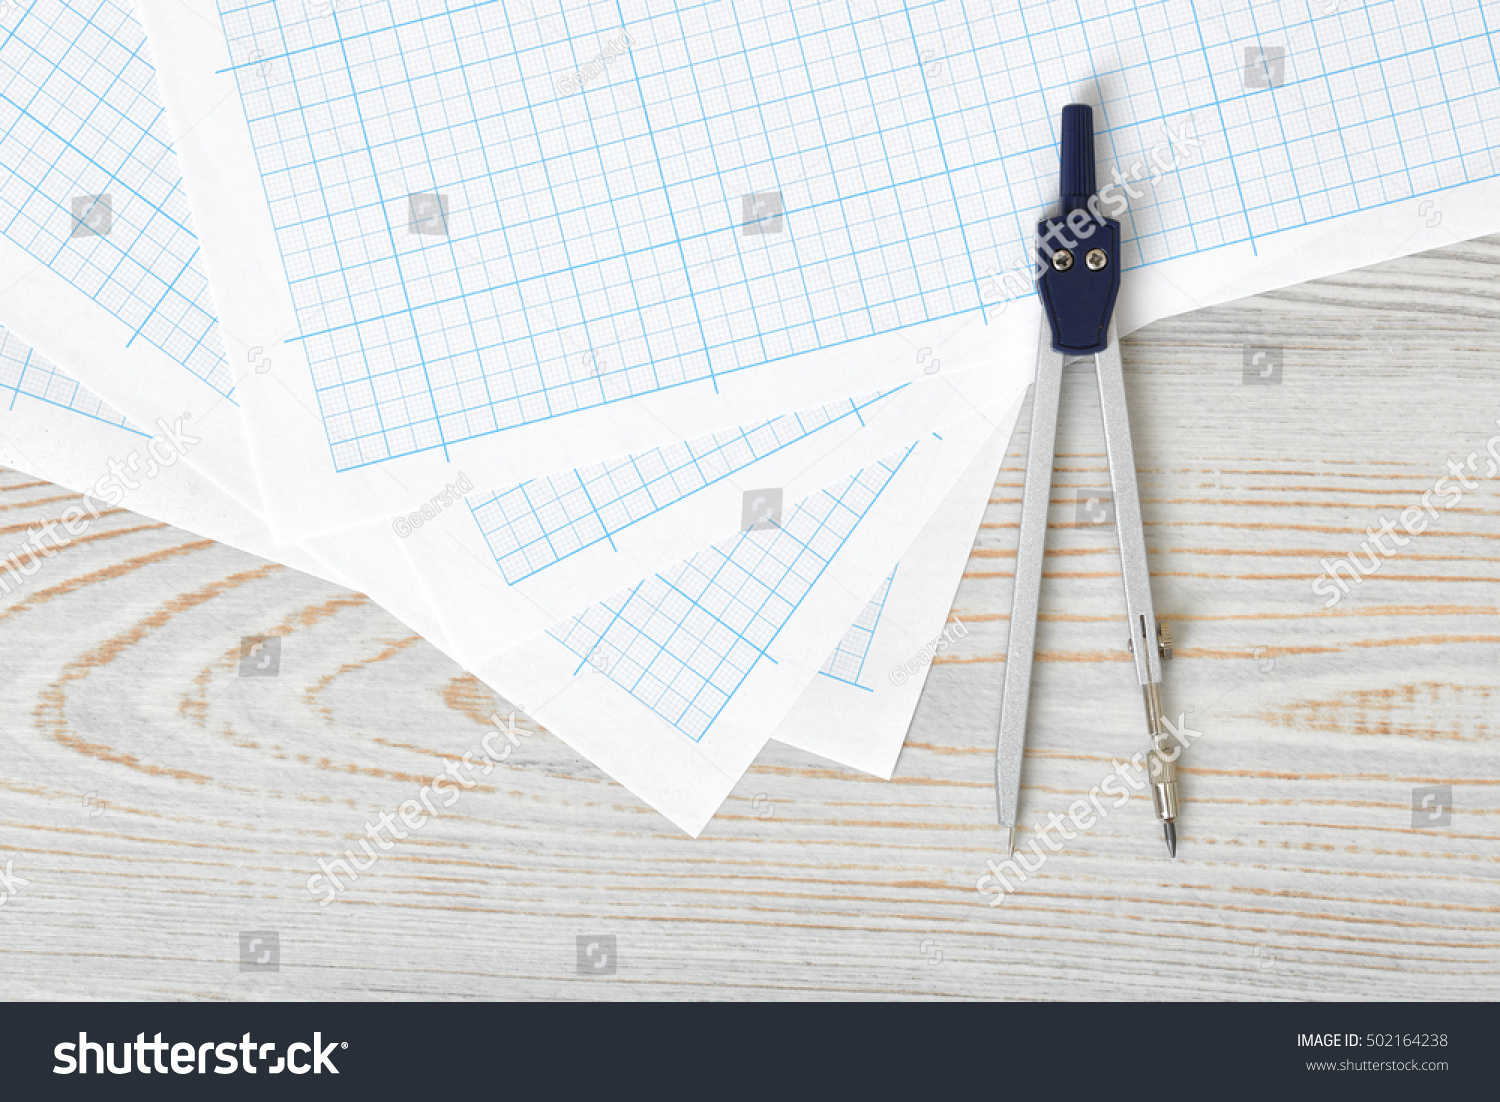 compass on graph paper top view stock photo edit now 502164238